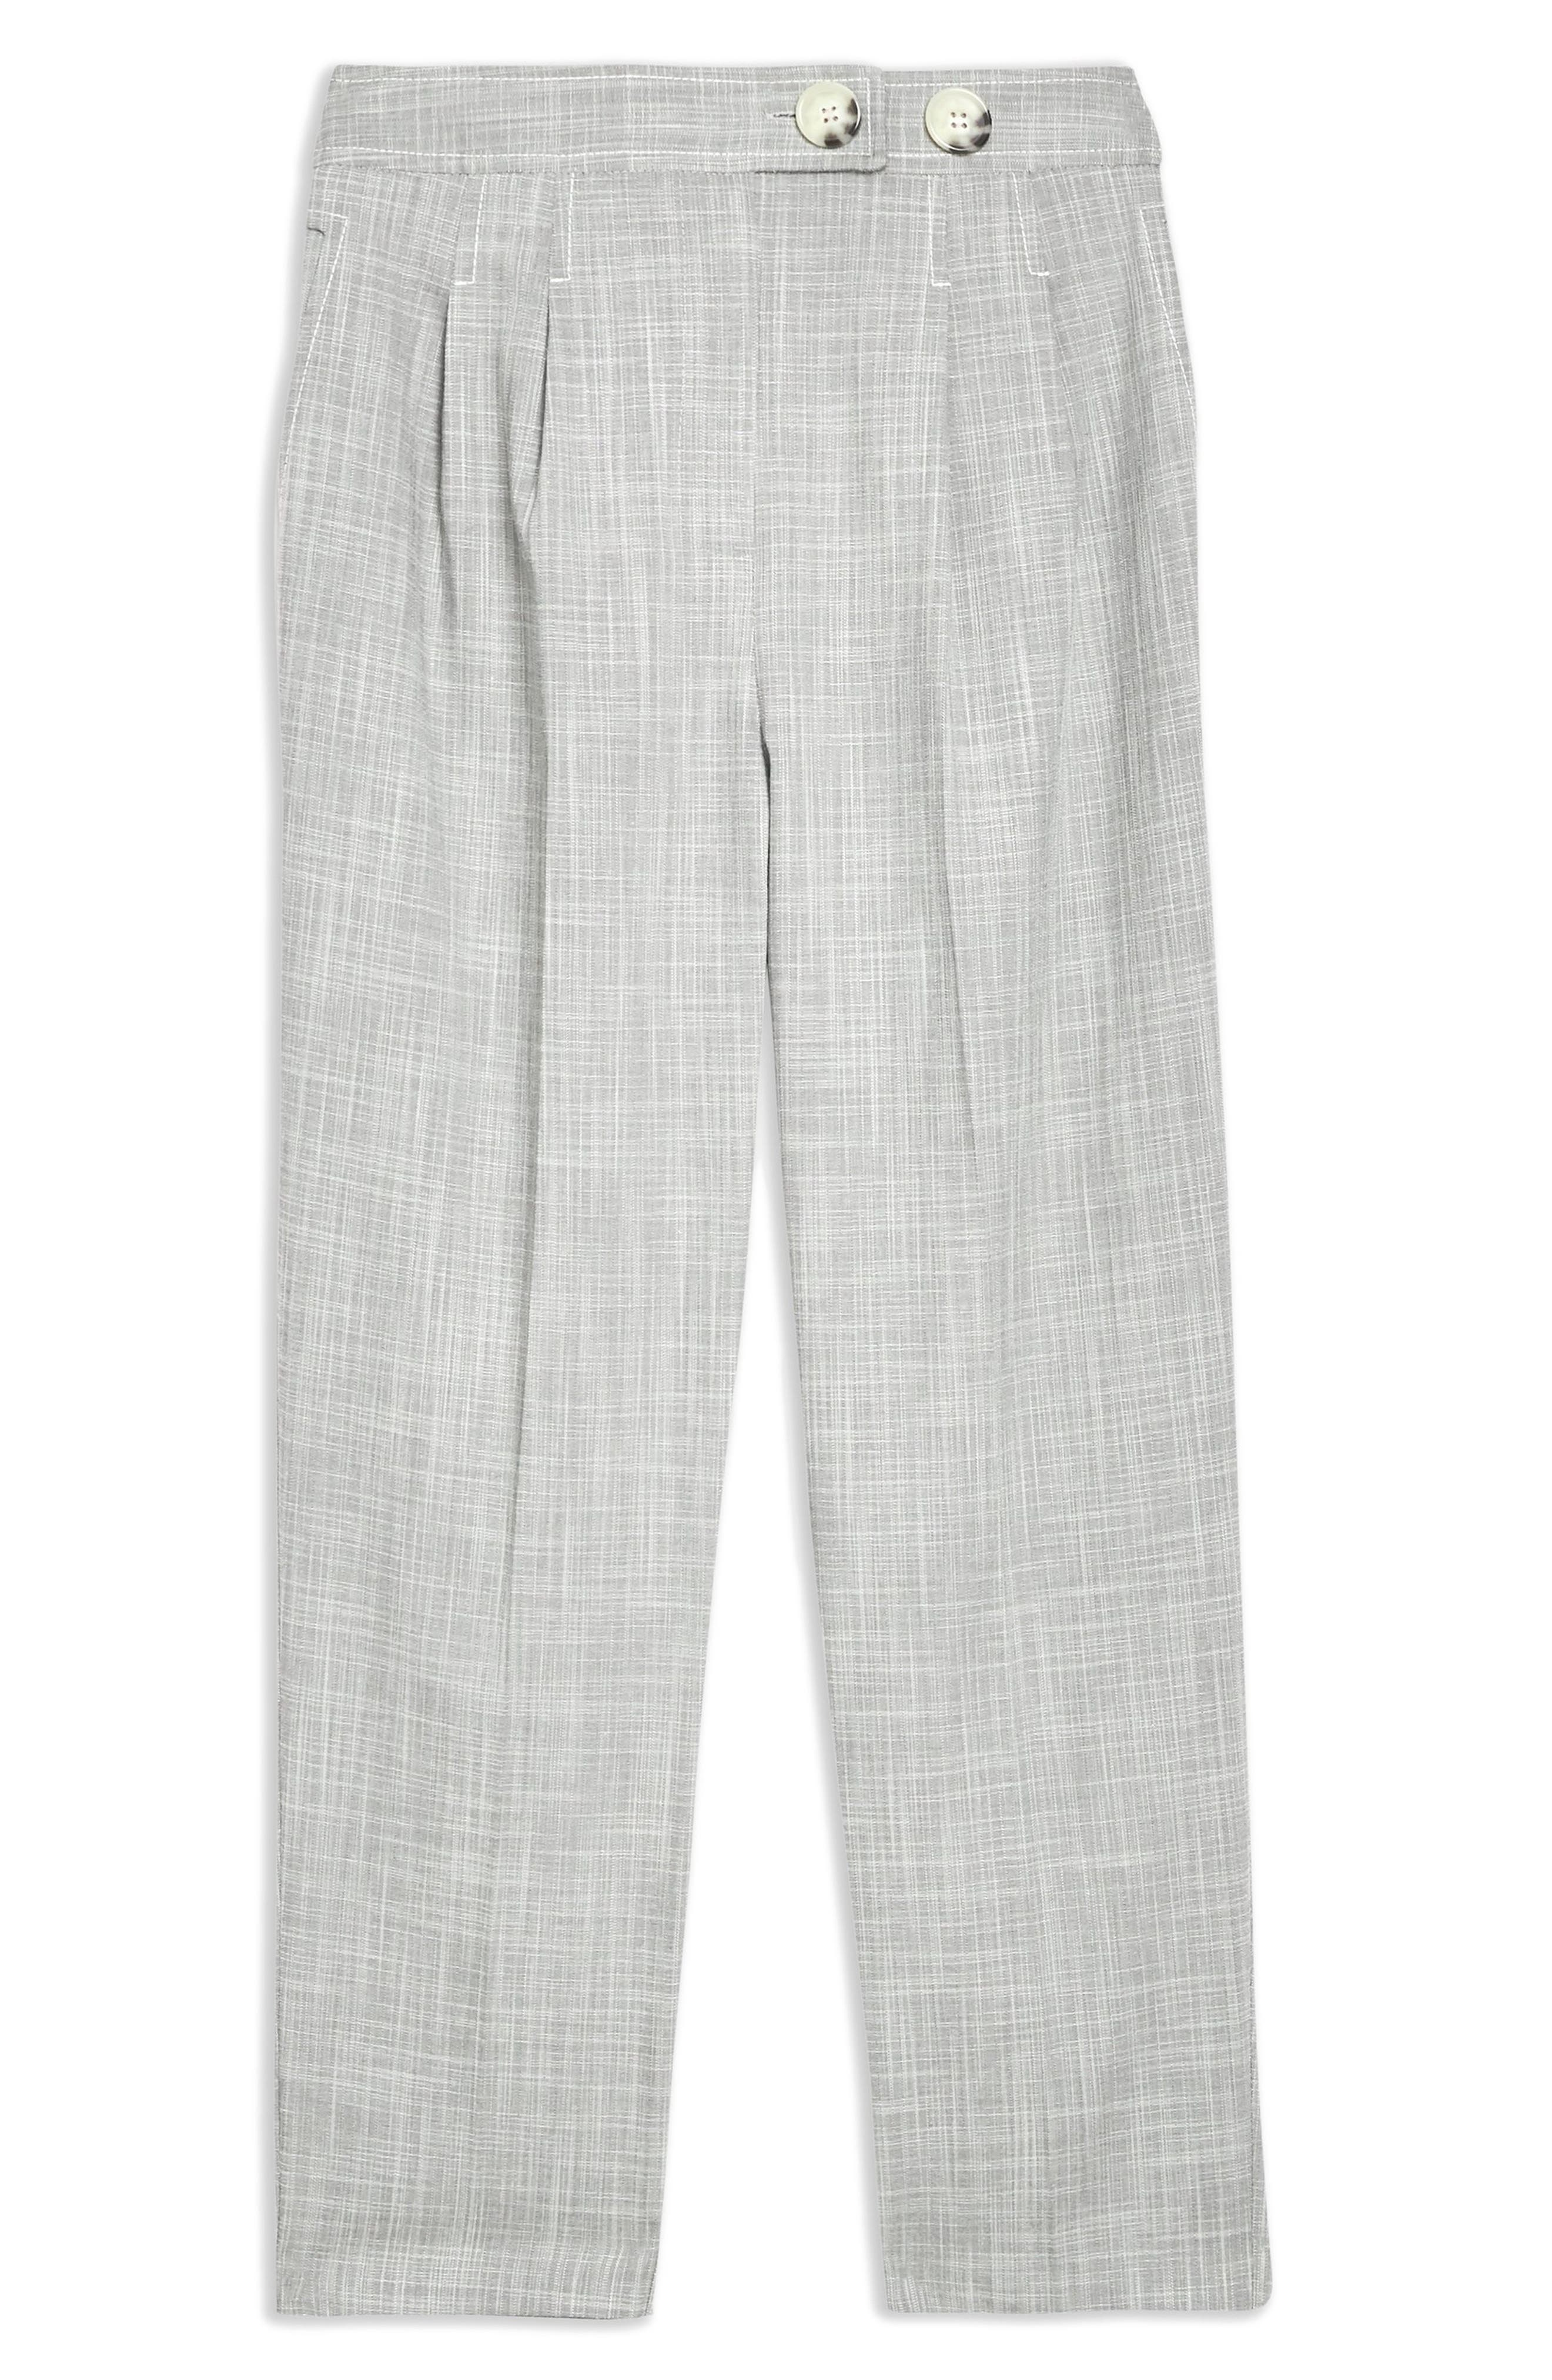 Tonic Tapered Trousers,                             Alternate thumbnail 3, color,                             GREY